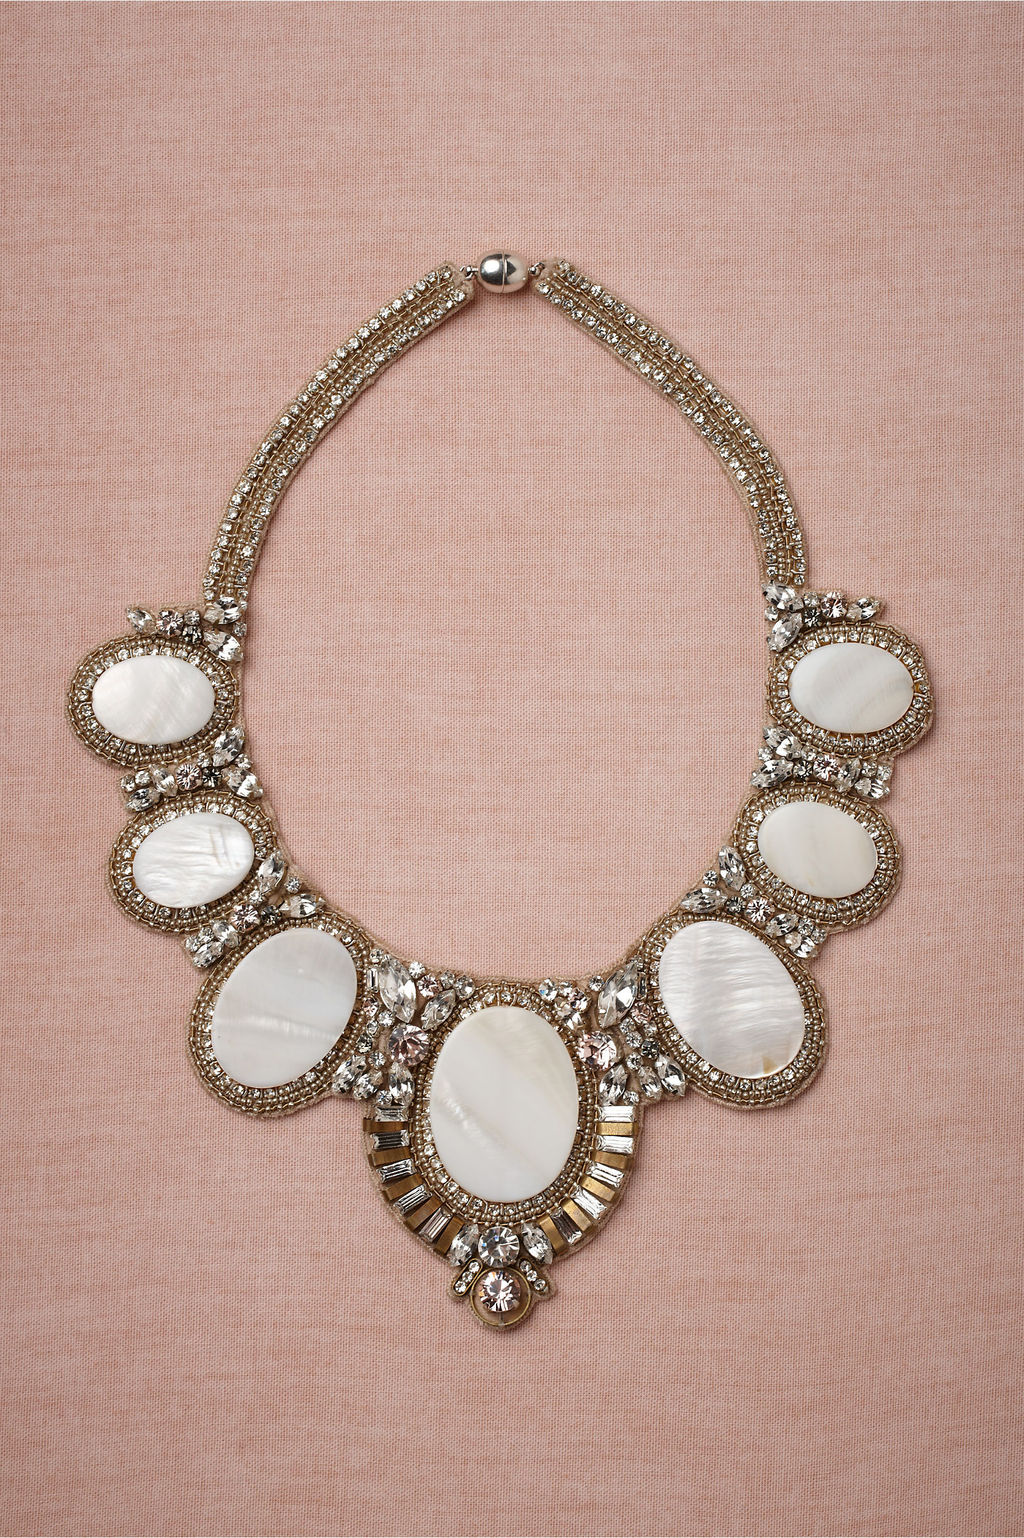 bhldn bridal gowns wedding jewelry statement necklace 1